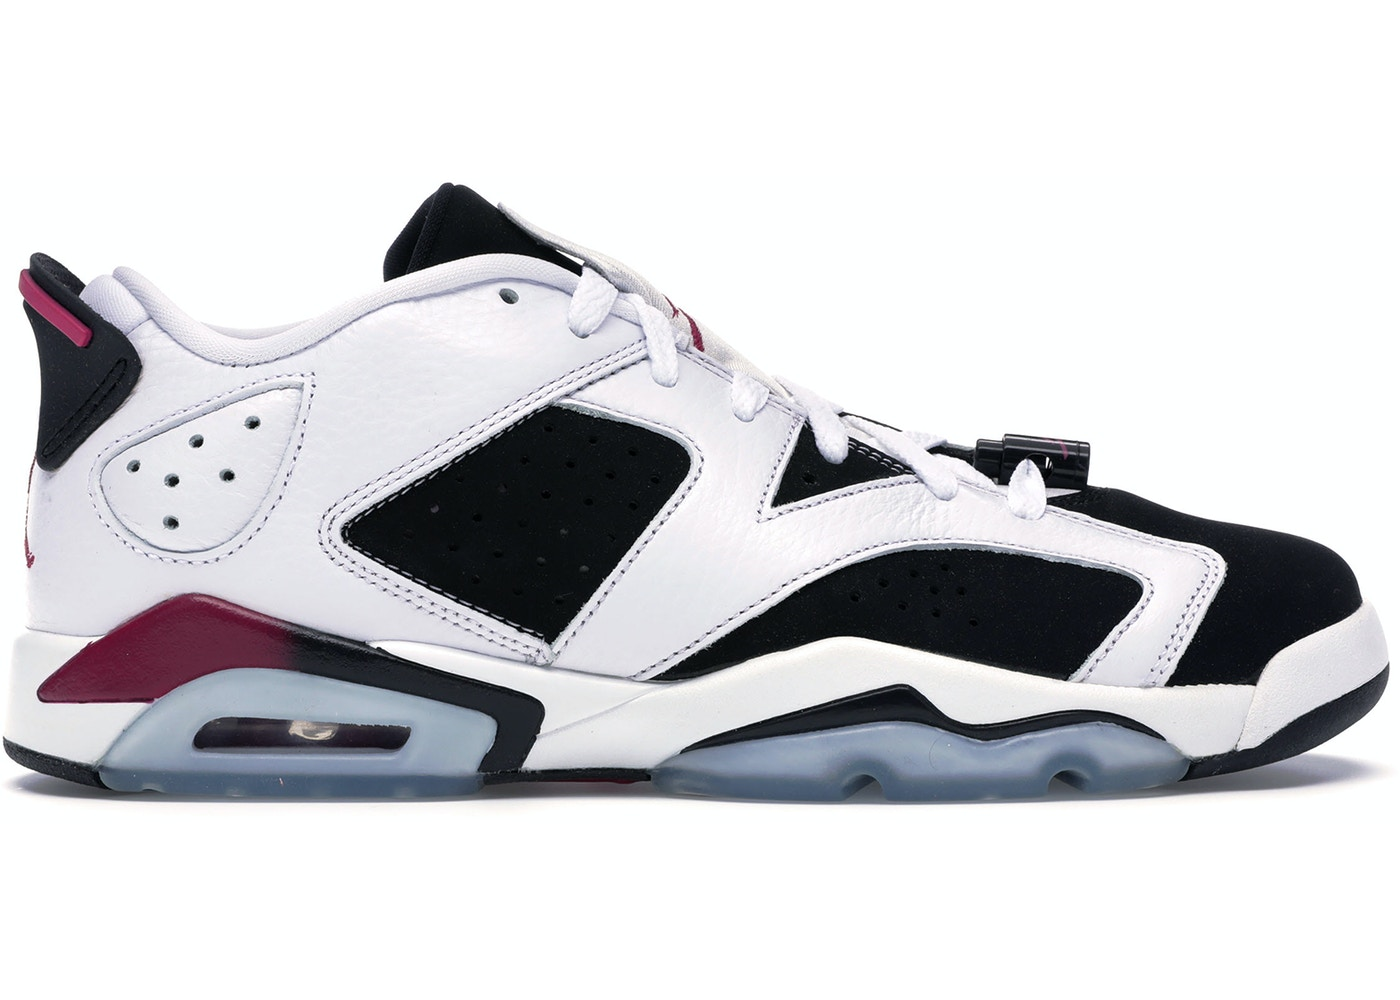 wholesale dealer e3a0f 3a329 Jordan 6 Retro Low Fuchsia Flash (GS) - 768878-107